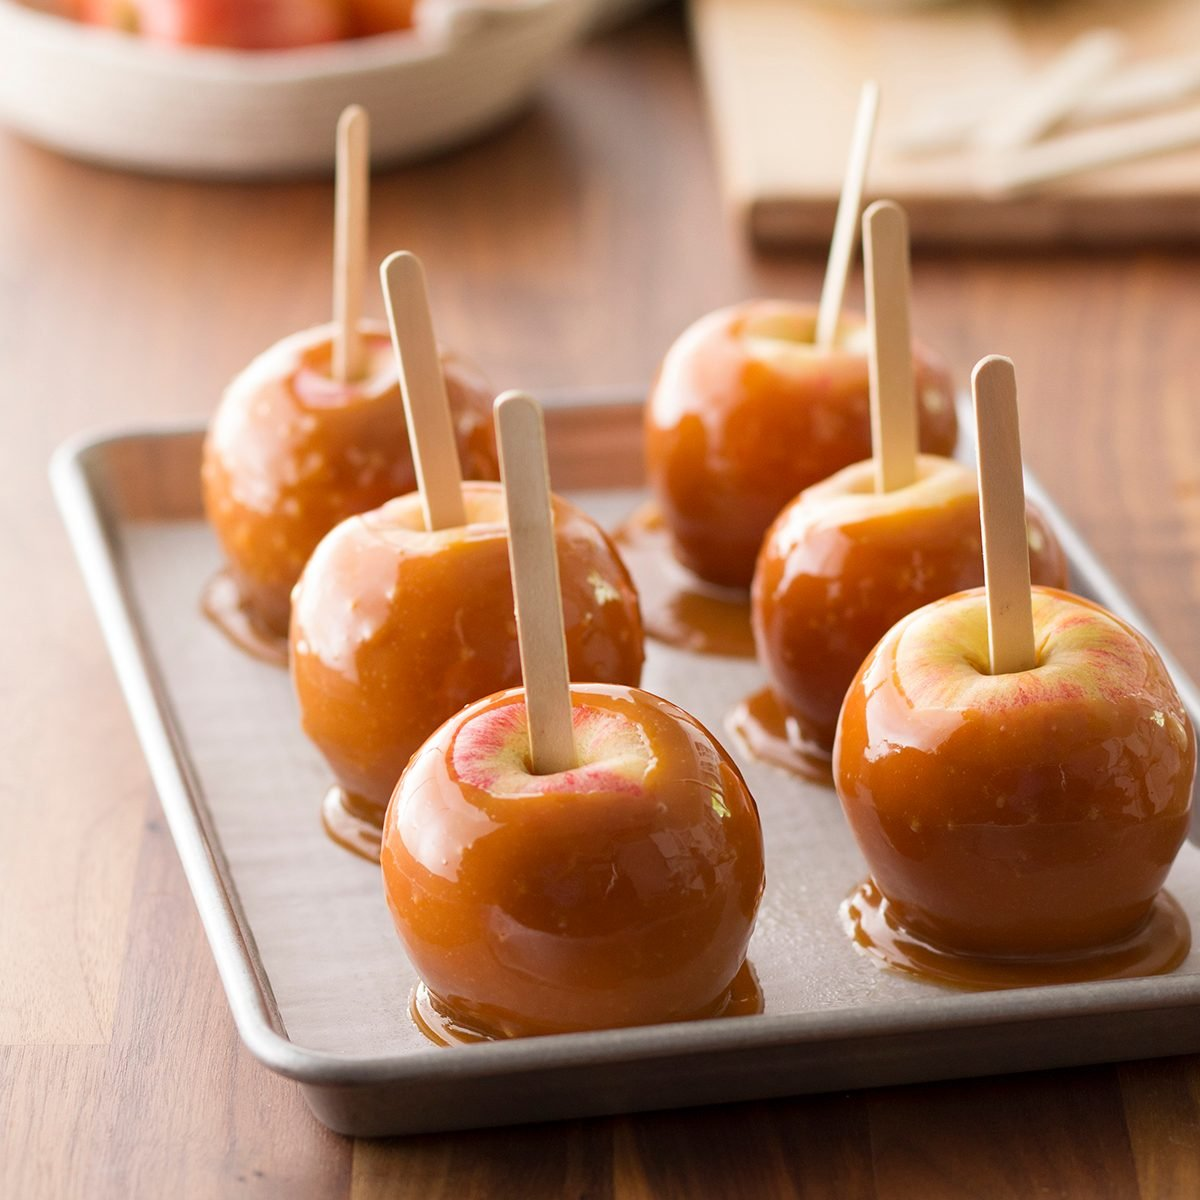 How to Make Caramel Apples the Easy Way